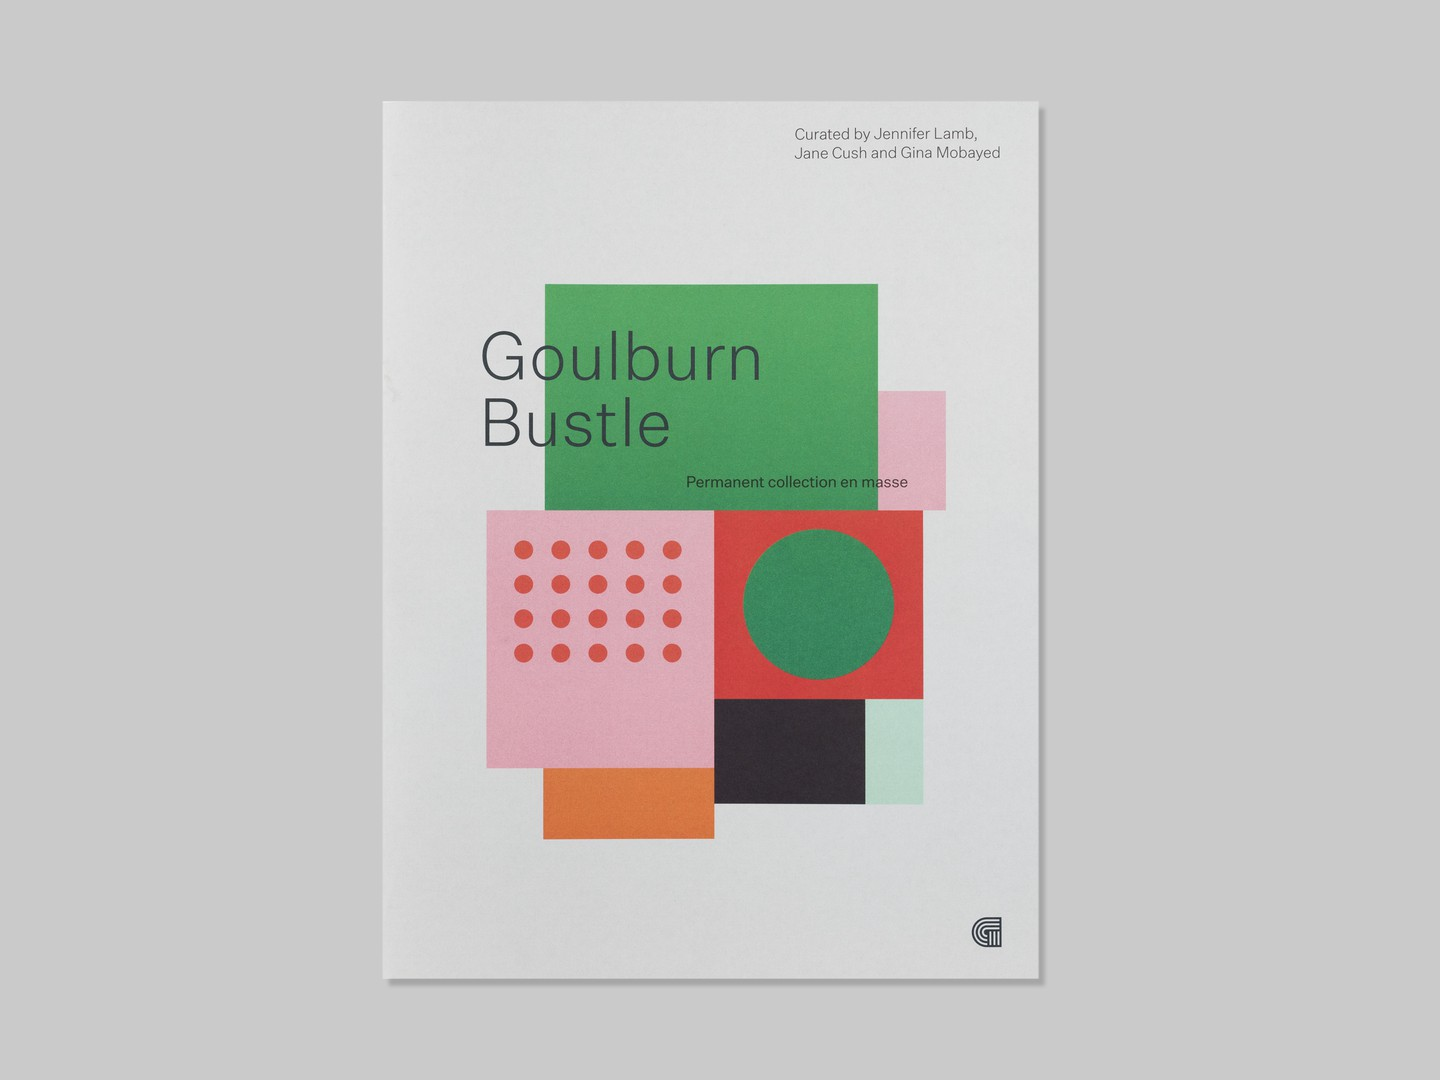 uploads/2019_03/Goulburn_Bustle_Catalogue_Cover.jpg